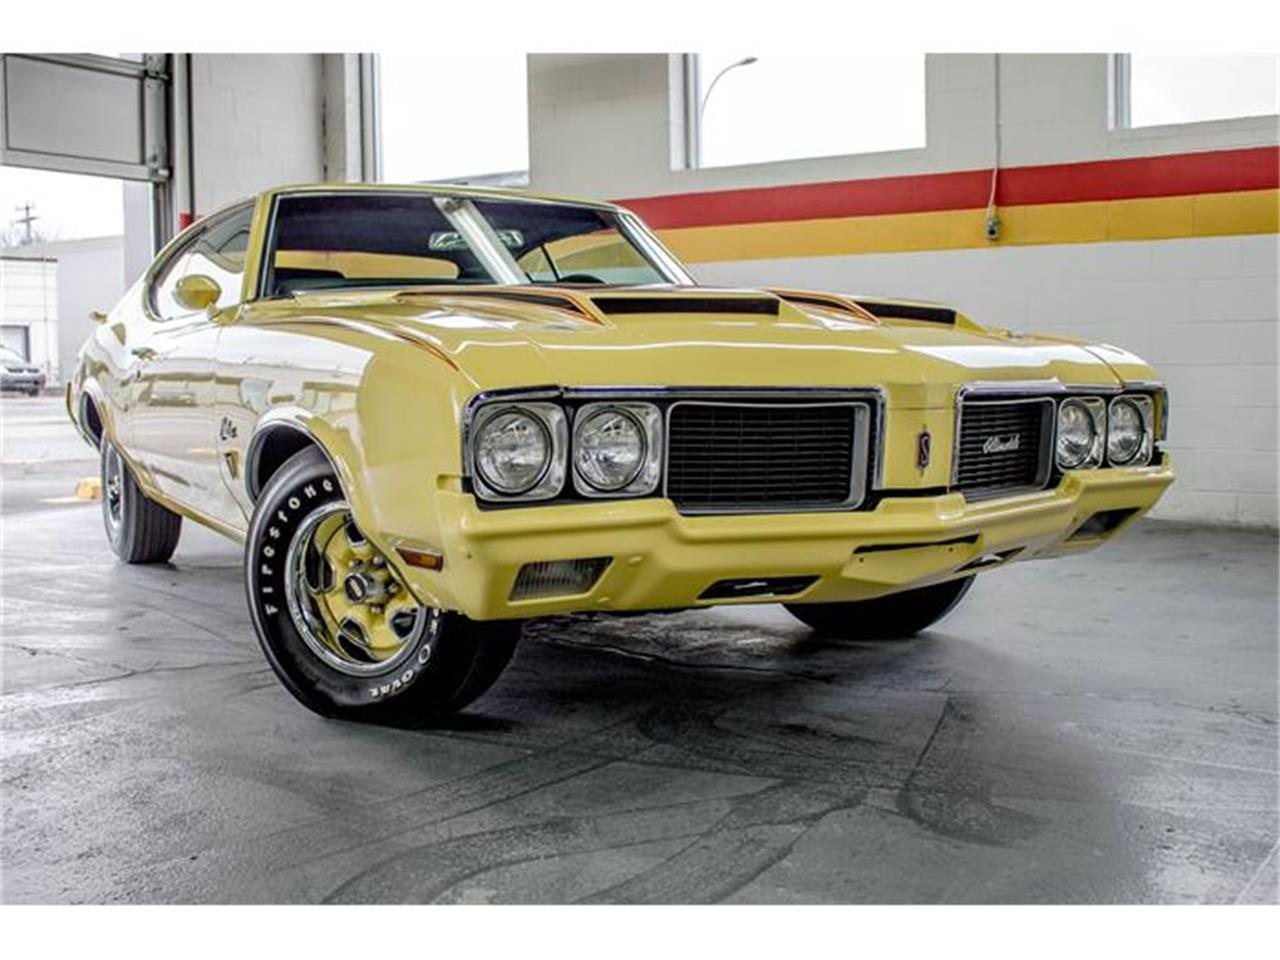 Large Picture of Classic '70 Rallye 350 located in Montreal Quebec - $31,990.00 Offered by John Scotti Classic Cars - GE80